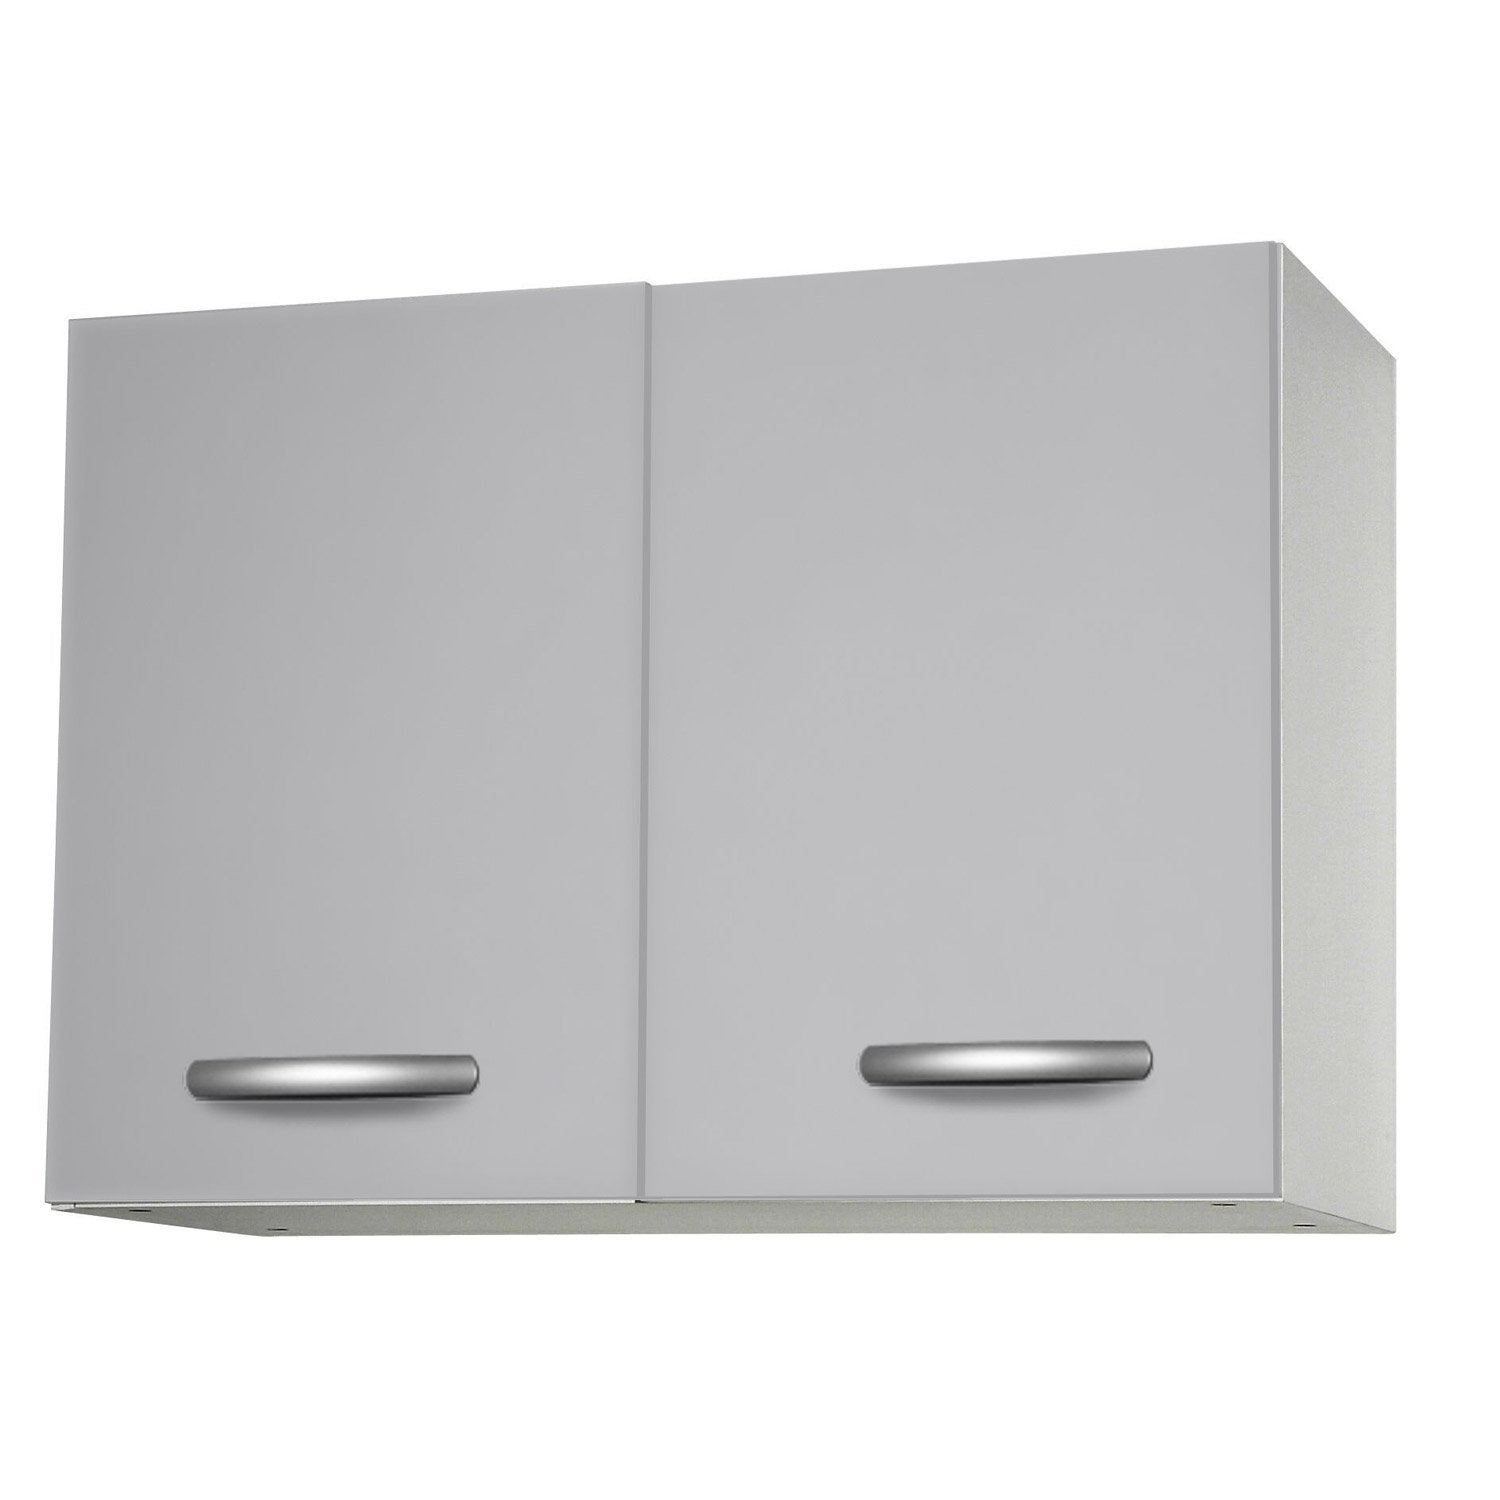 Meuble de cuisine haut 2 portes gris aluminium for Portes elements cuisine leroy merlin